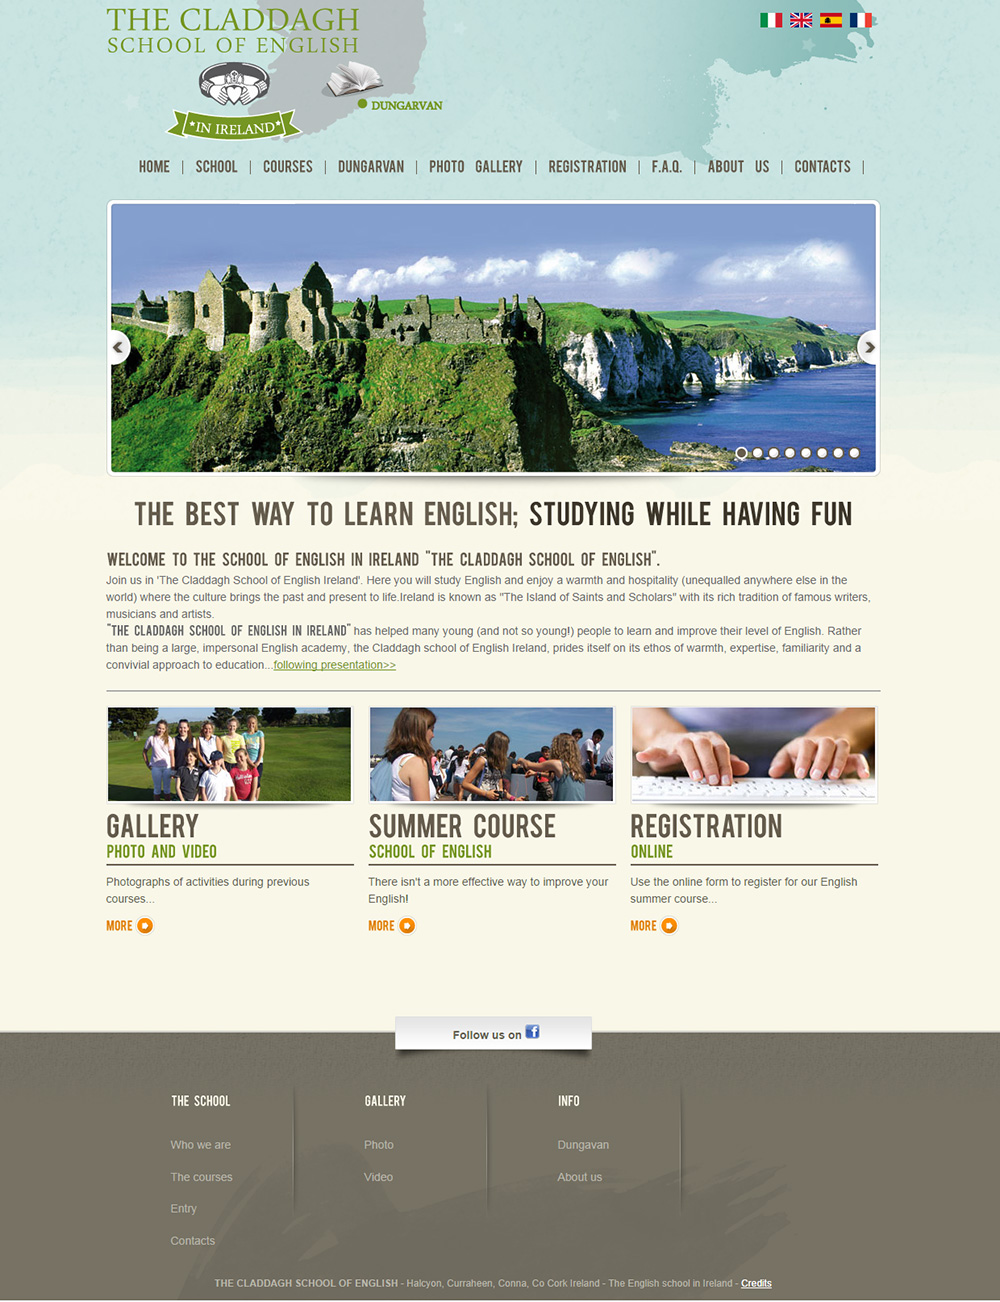 Studio e realizzazione sito web The Claddagh the school of english in Ireland